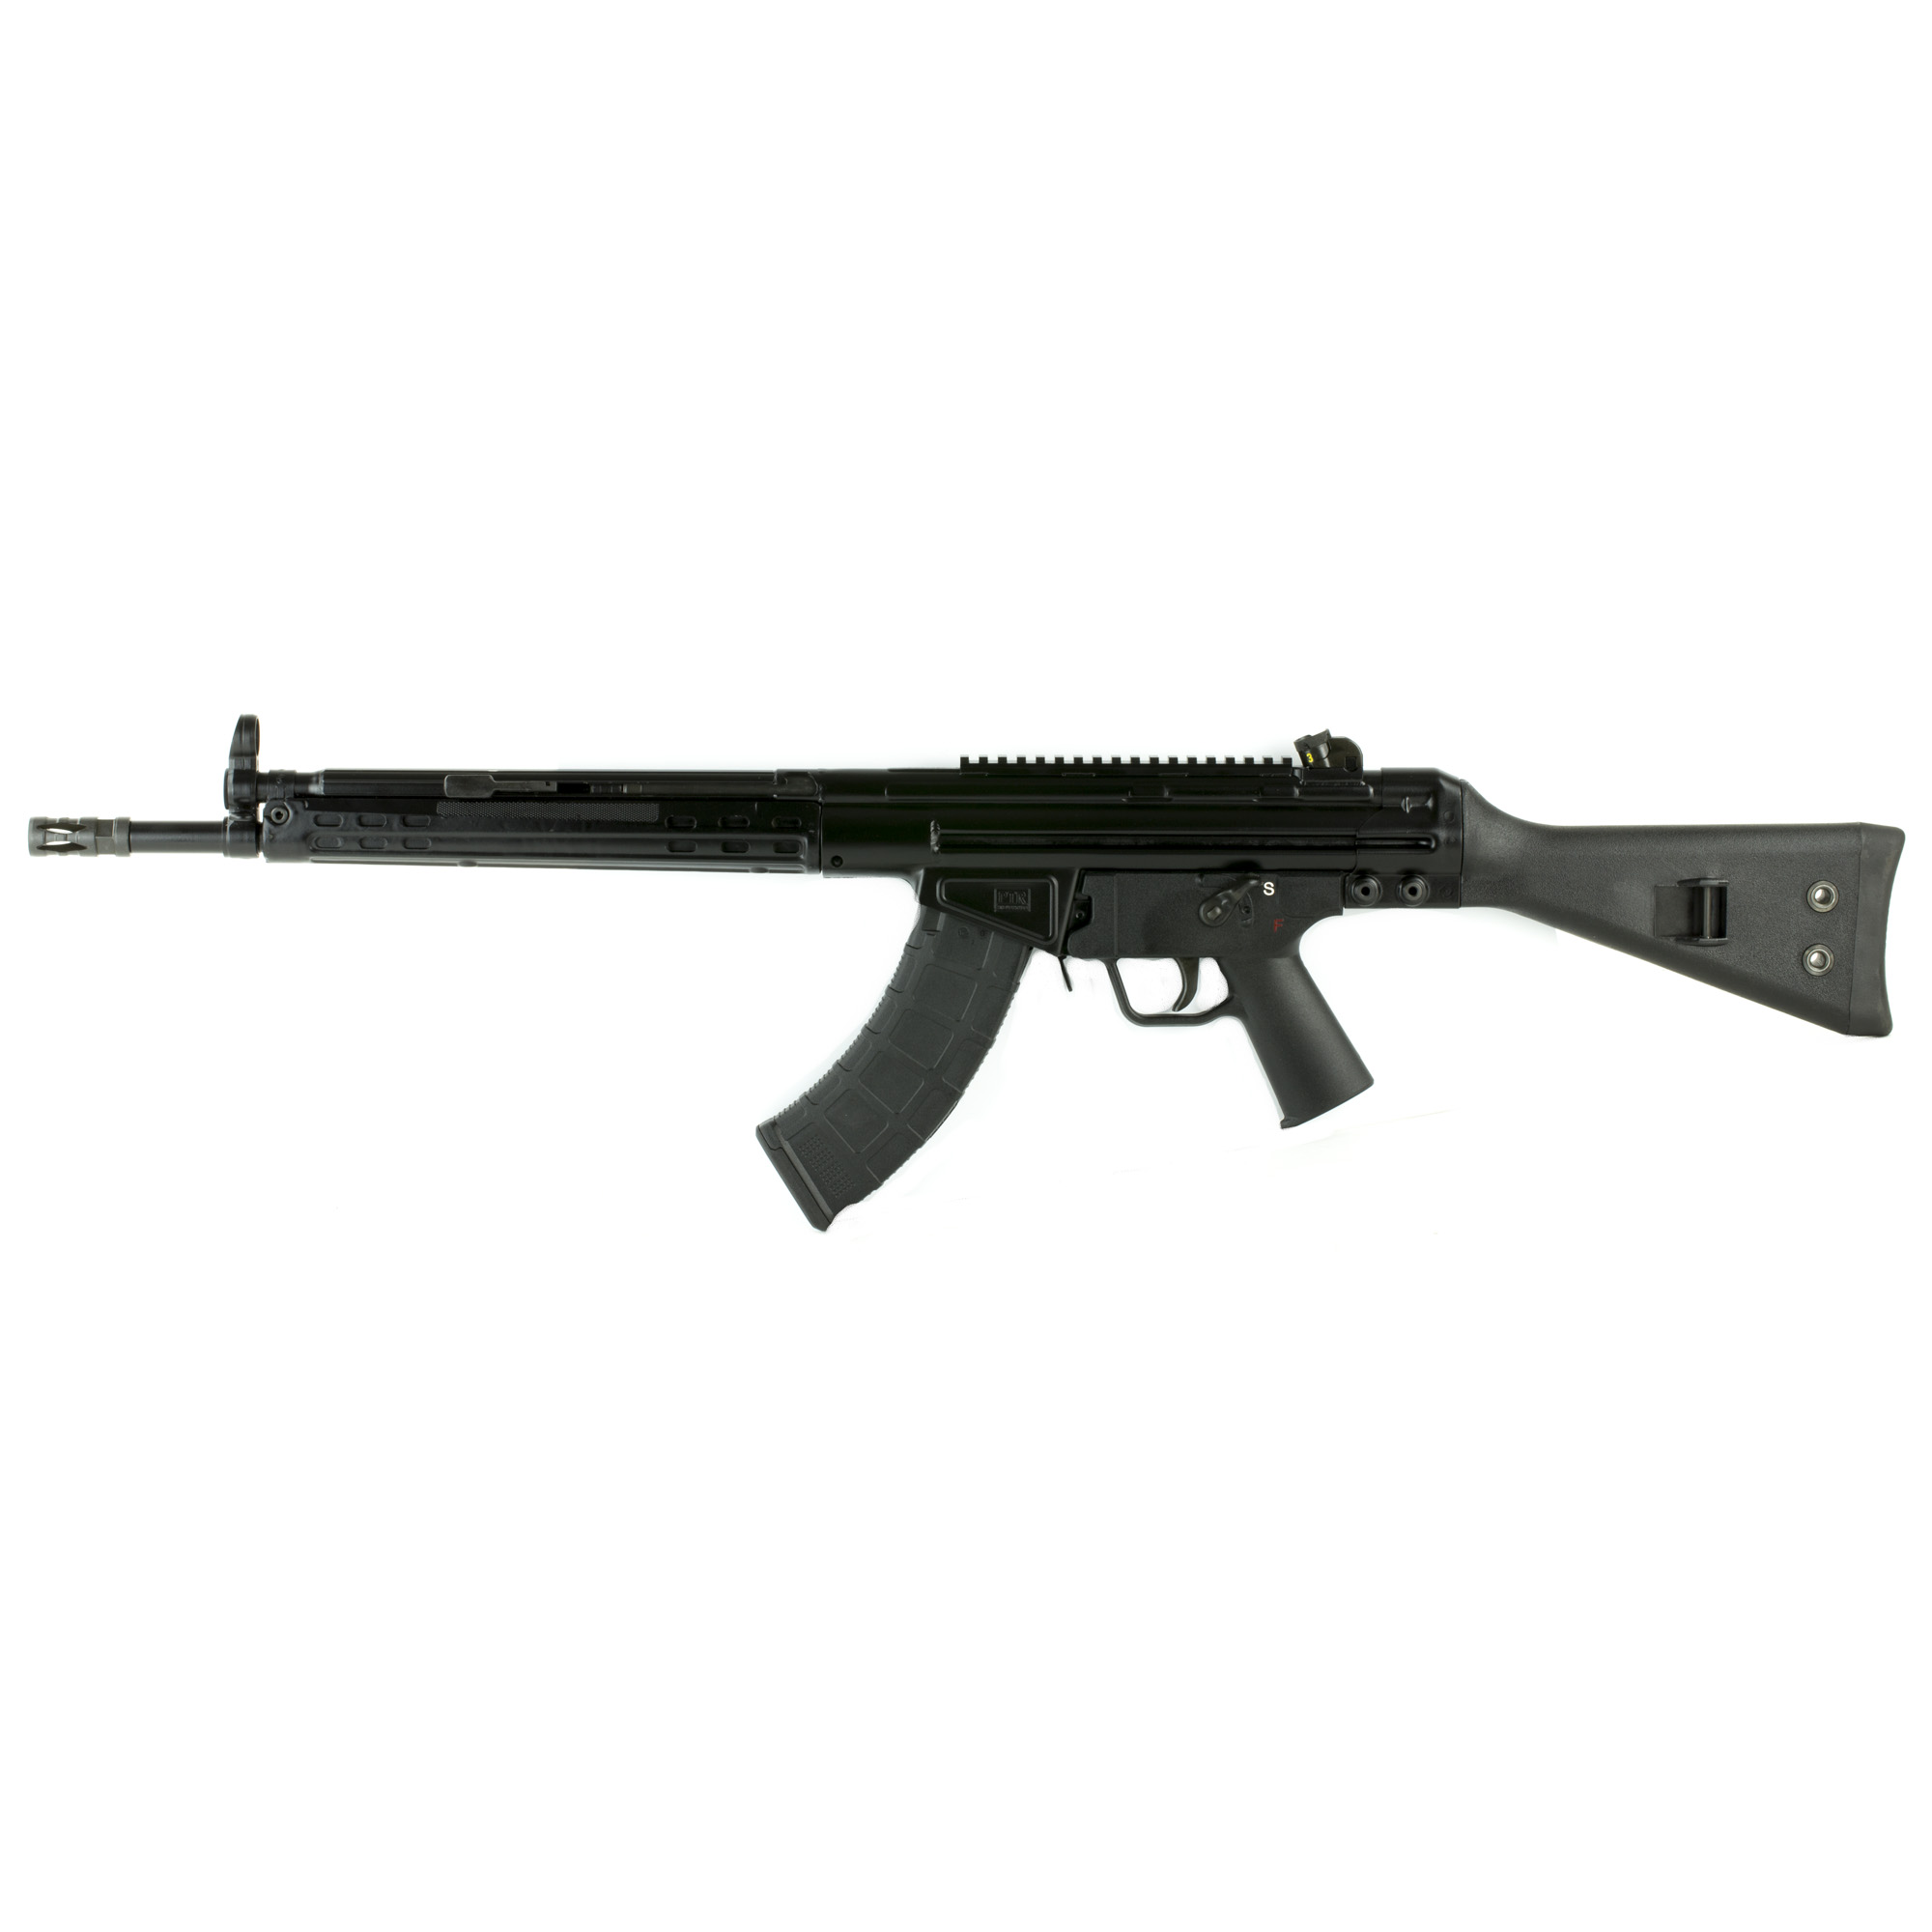 """The 32 KFR rifle features a 16"""" bull barrel and a slim-line black polymer handguard. The precision-welded top rail allows for adding your favorite optic or you can use the traditional iron sights (included). This rifle is chambered in 7.62 x 39 and ships with a Magpul AK magazine. Accepts most AK magazines."""